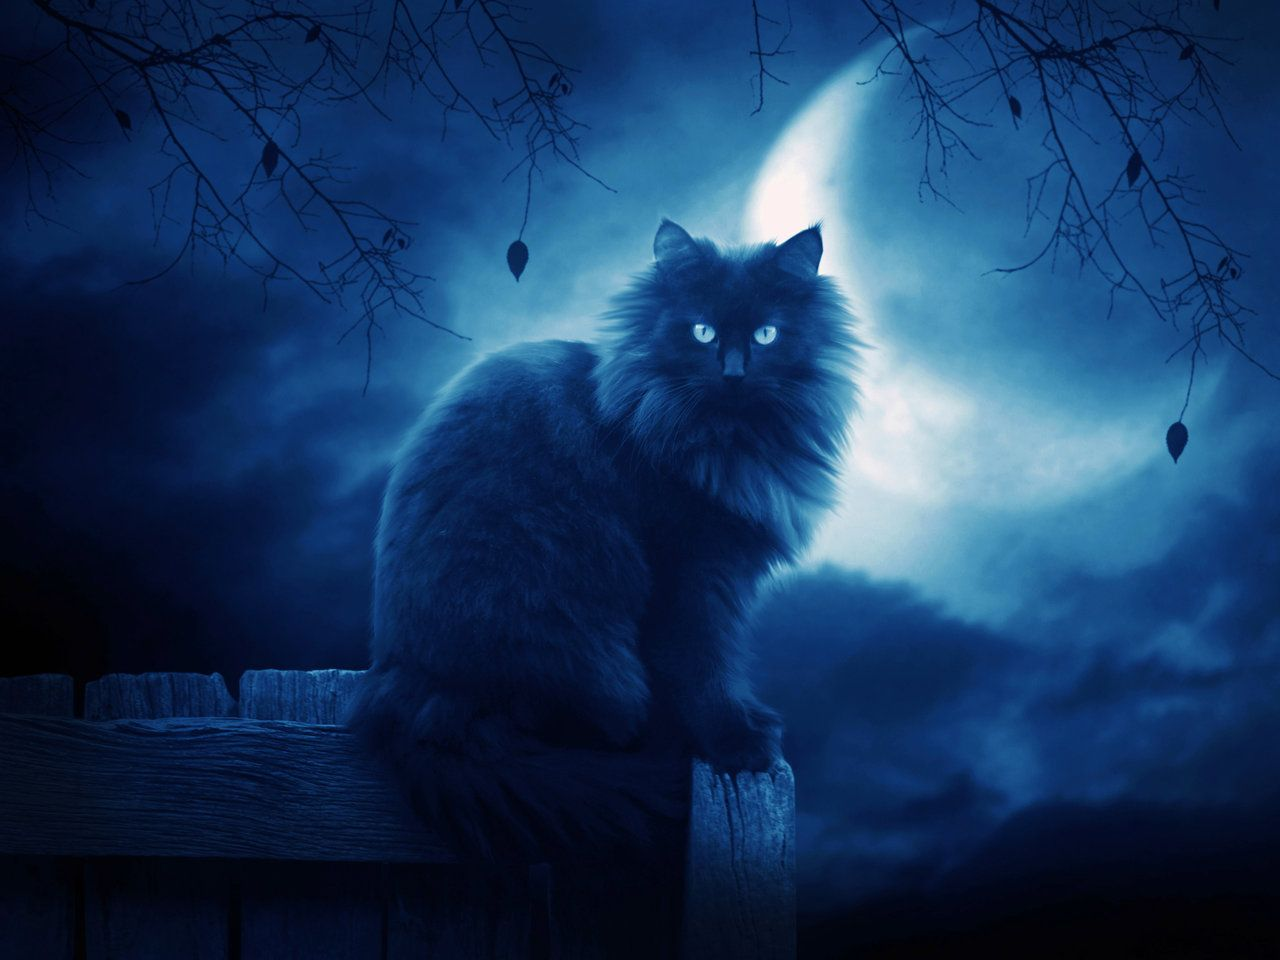 Fantasy Wallpaper Google Search Cat Wallpaper Evil Cat Cat Art